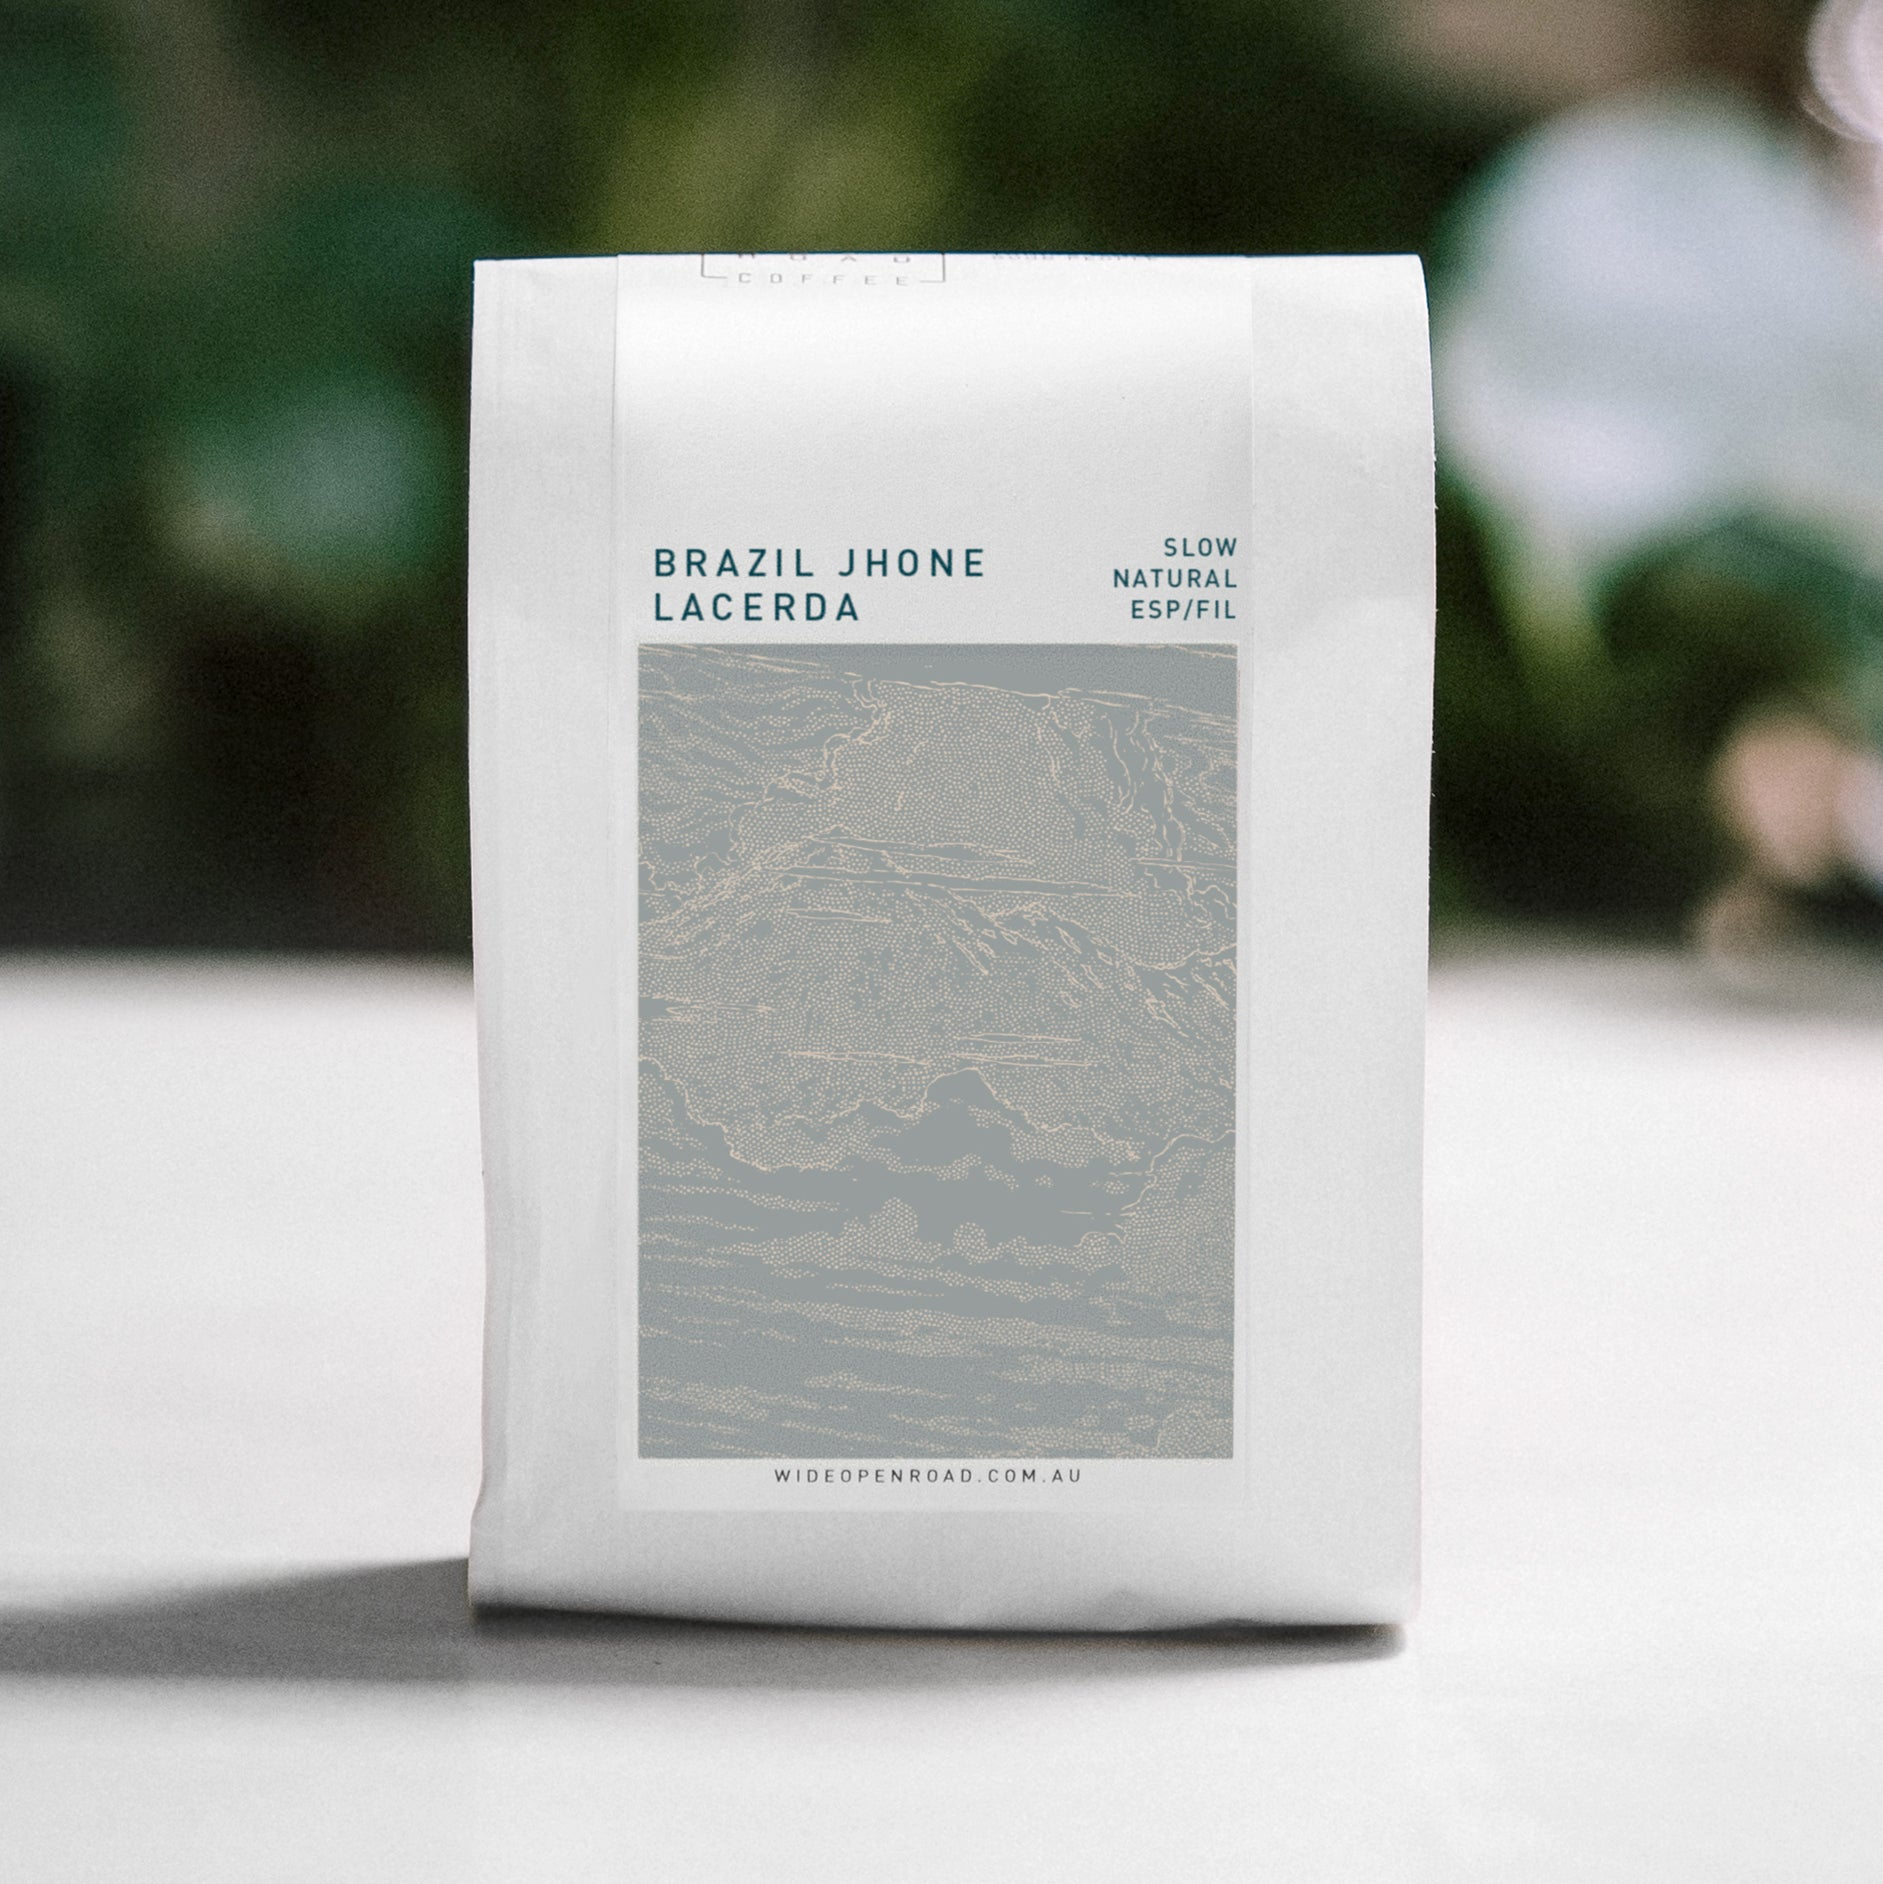 SINGLE ORIGIN ESPRESSO - Brazil, Jhone Lacerda